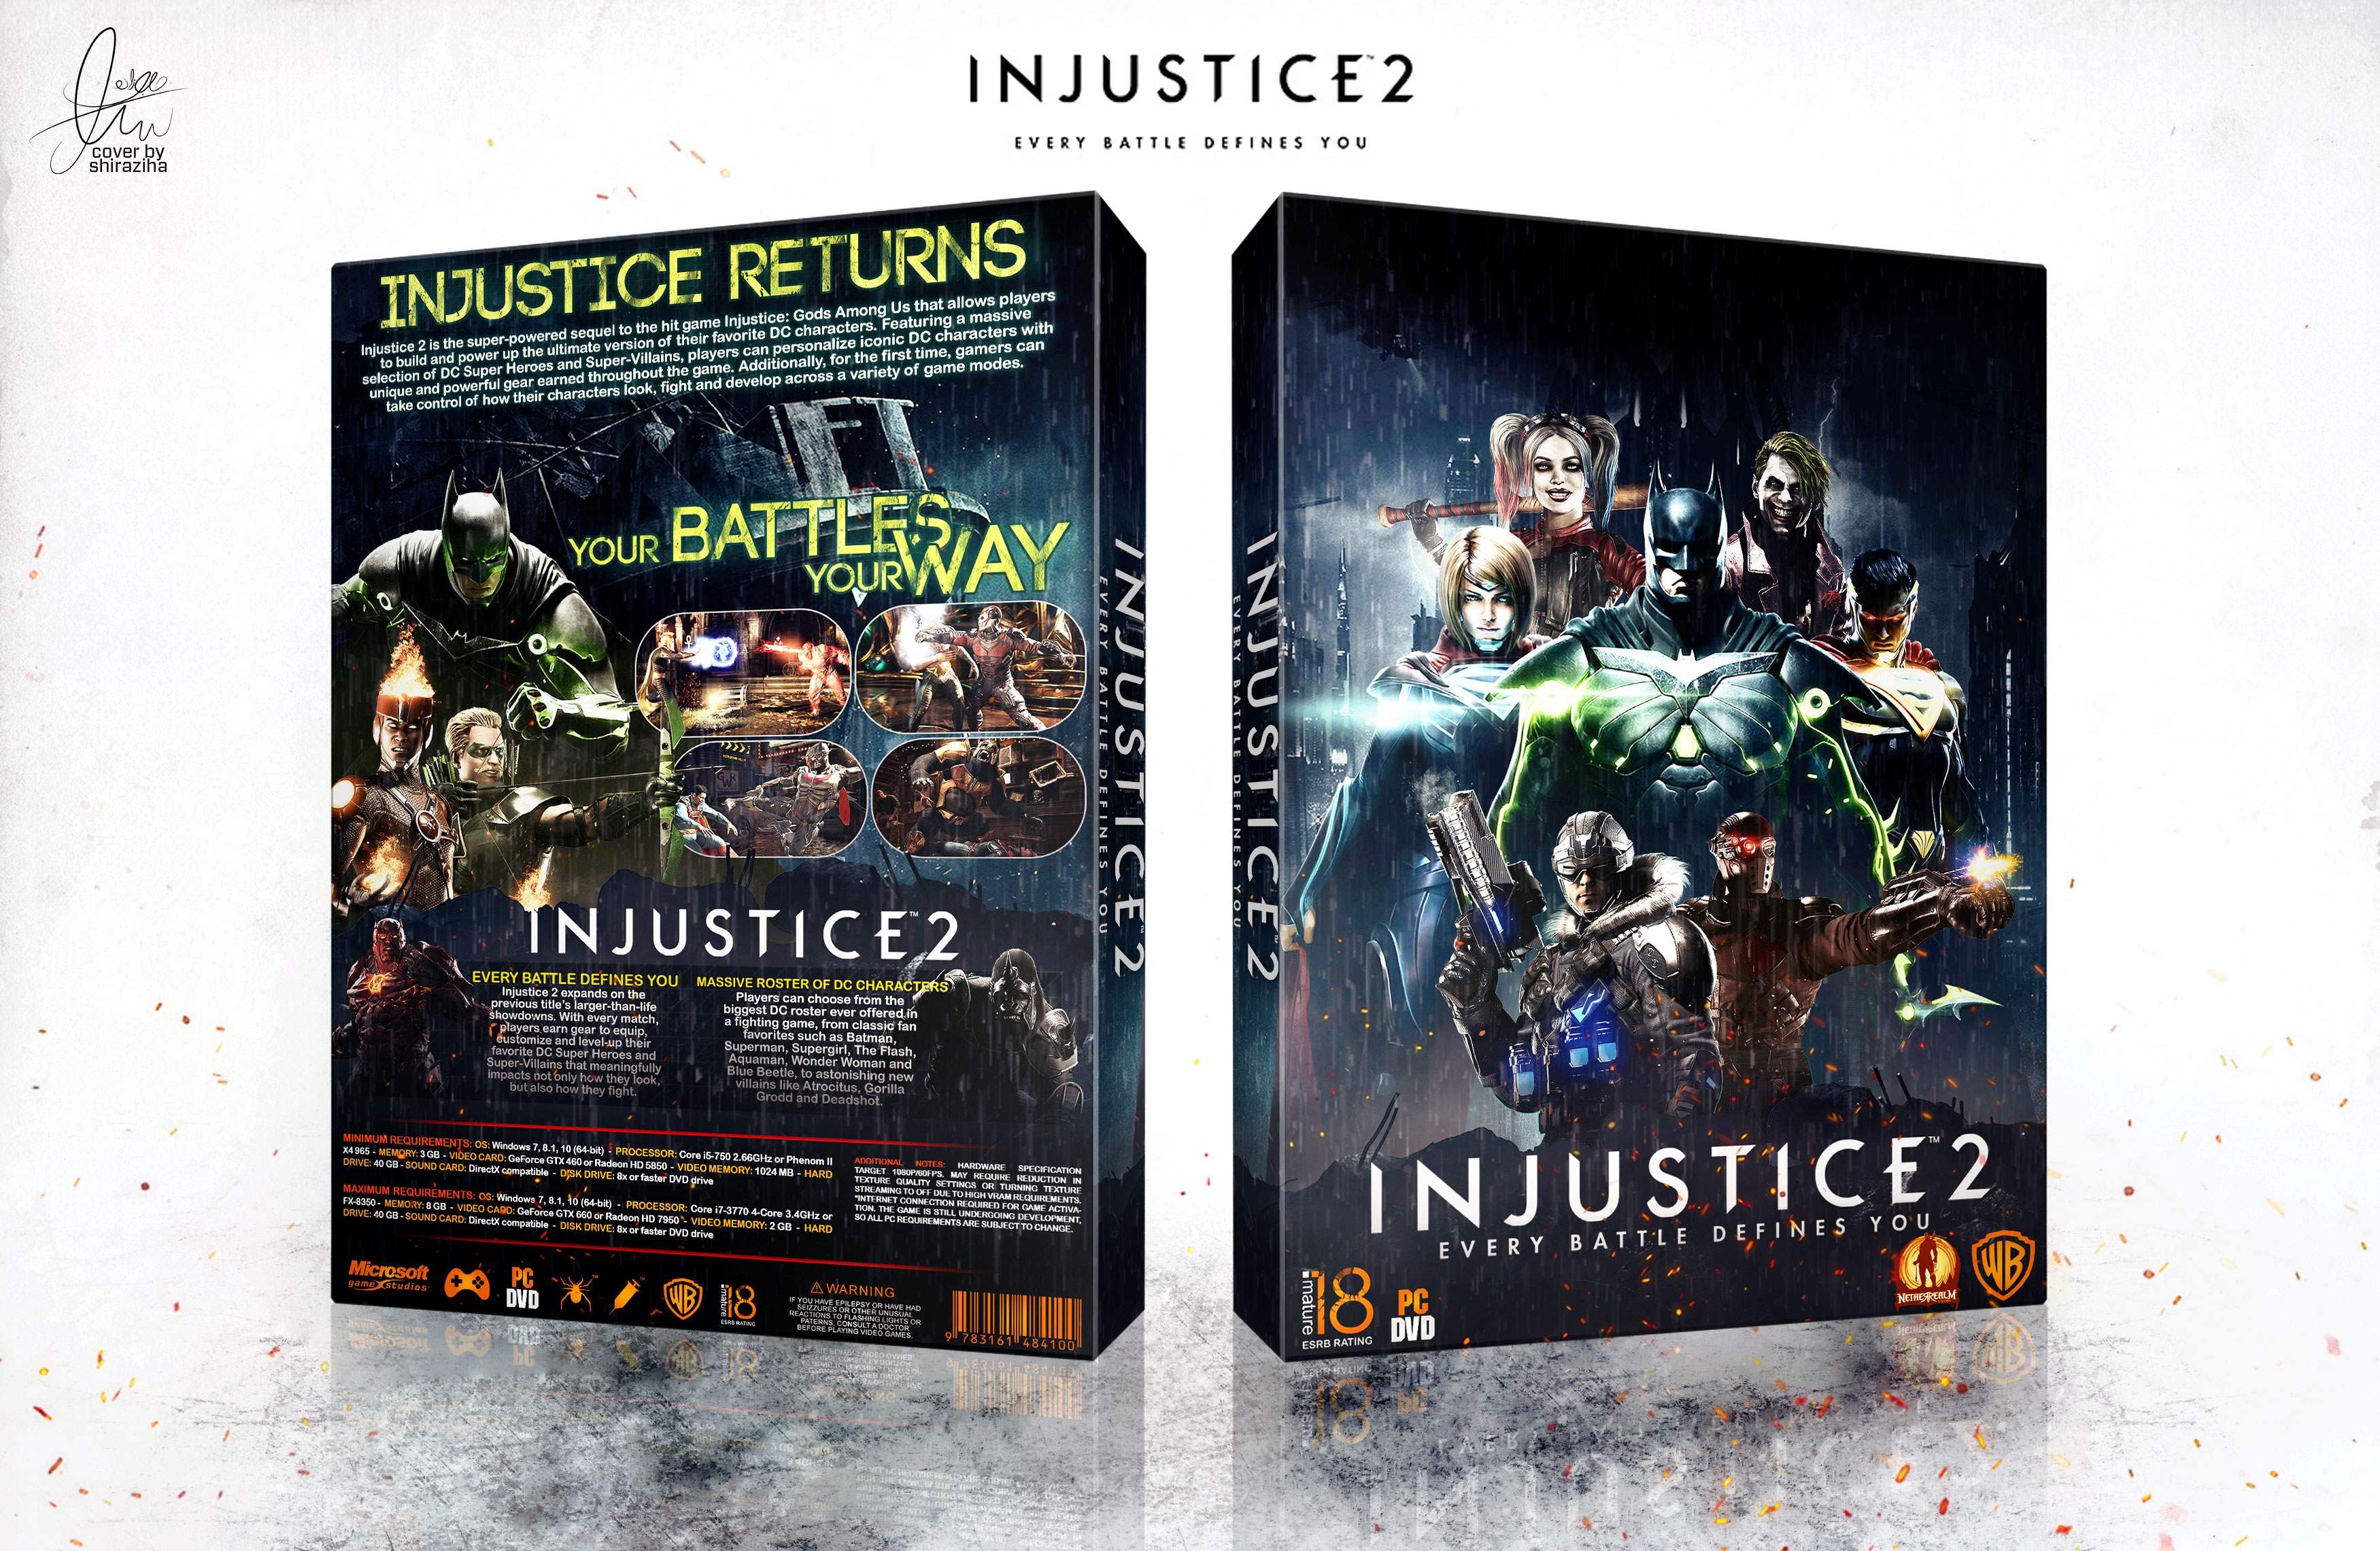 Injustice 2 box cover